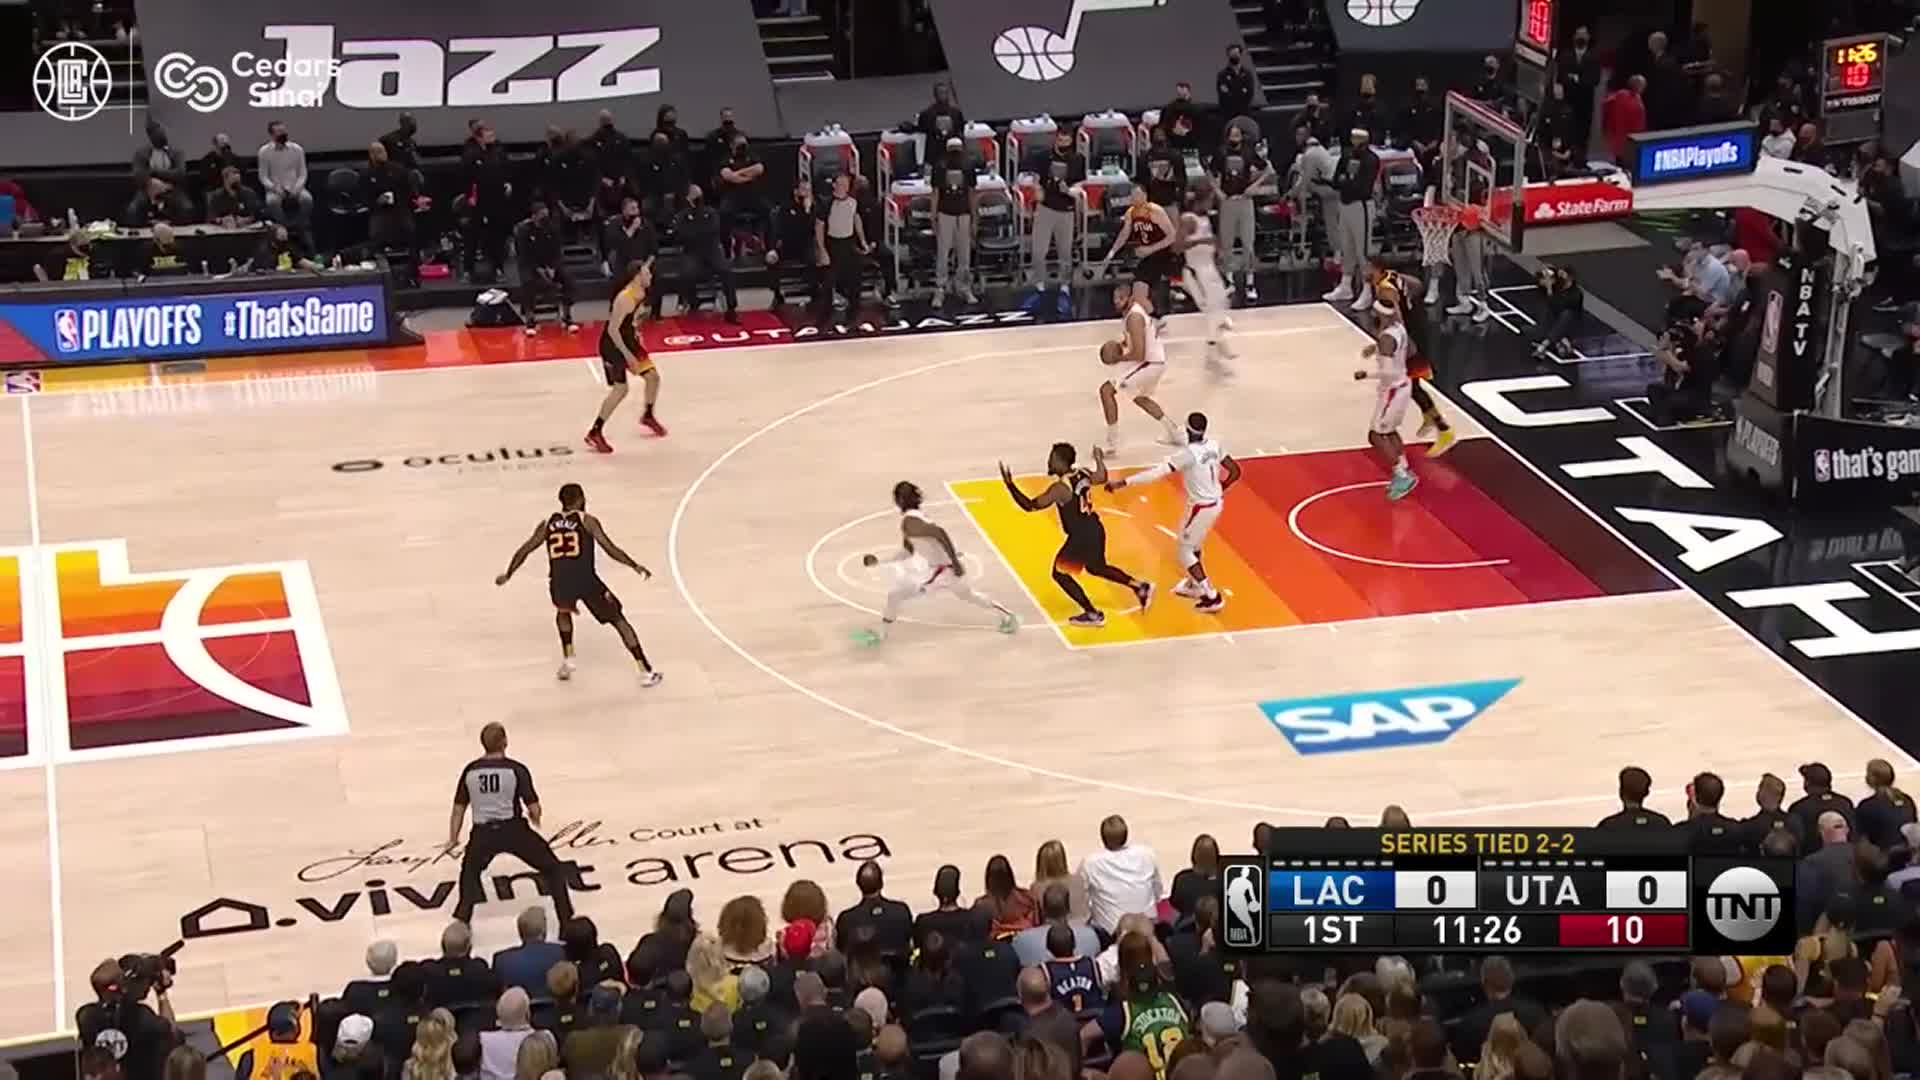 Cedars-Sinai Preventive Play of the Game | Clippers vs Jazz Game 5 (6.16.21)